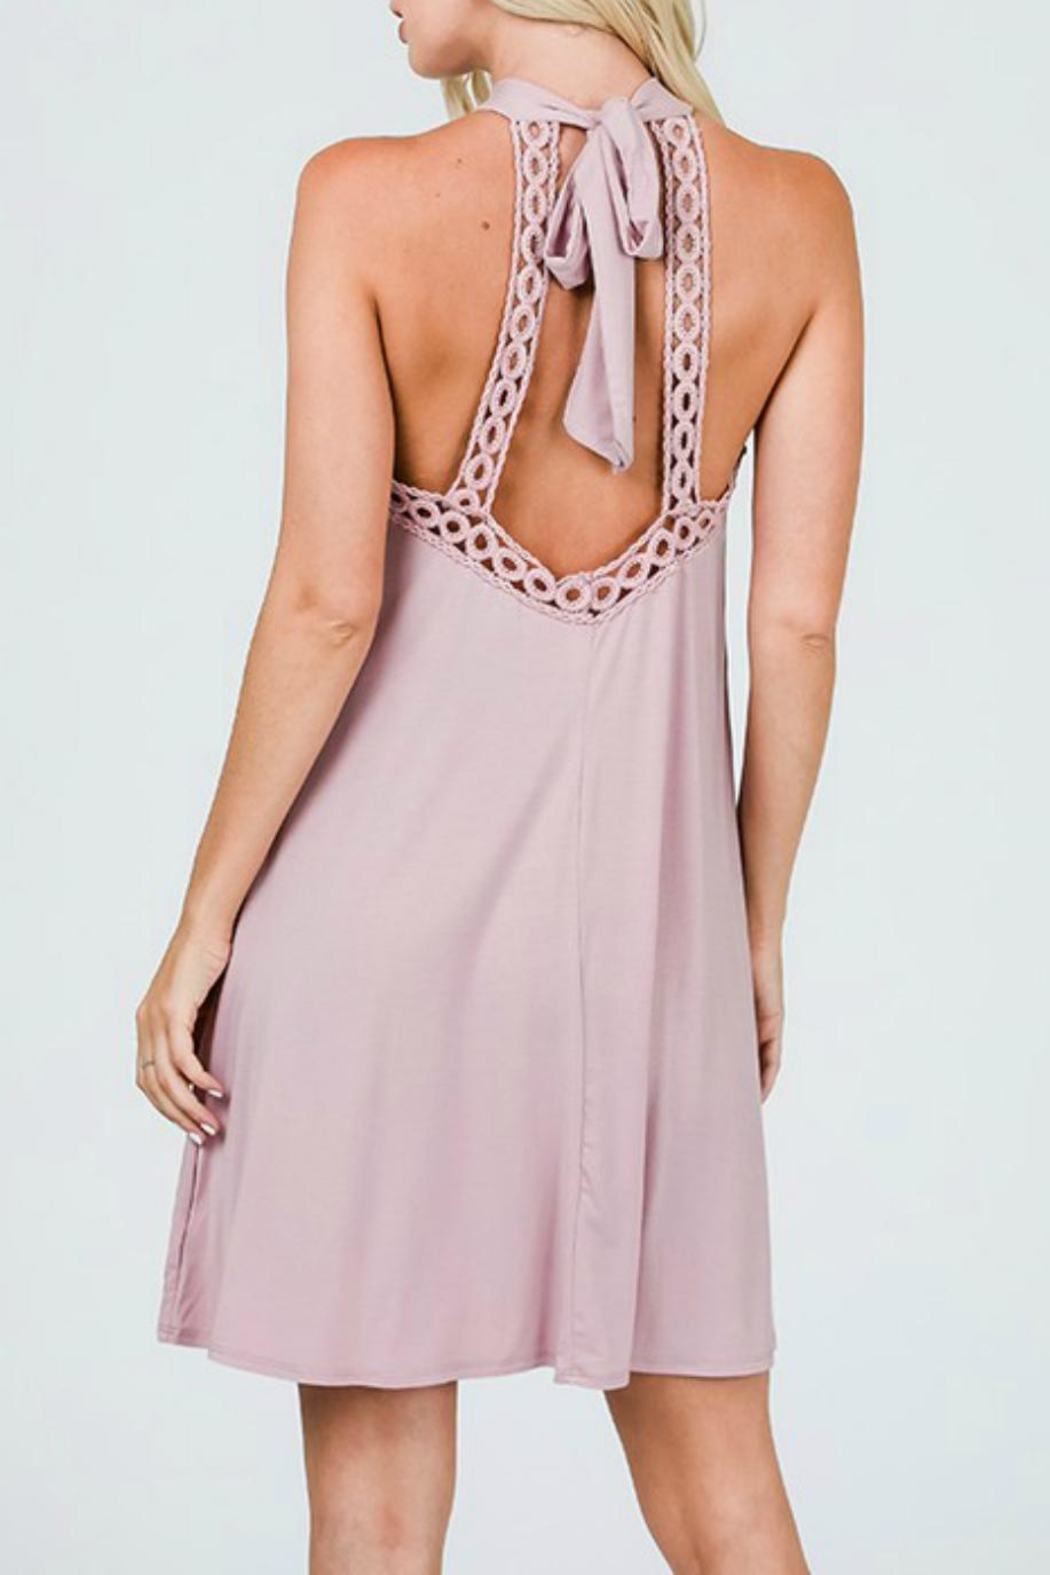 CY Fashion Halter Tank Dress - Side Cropped Image